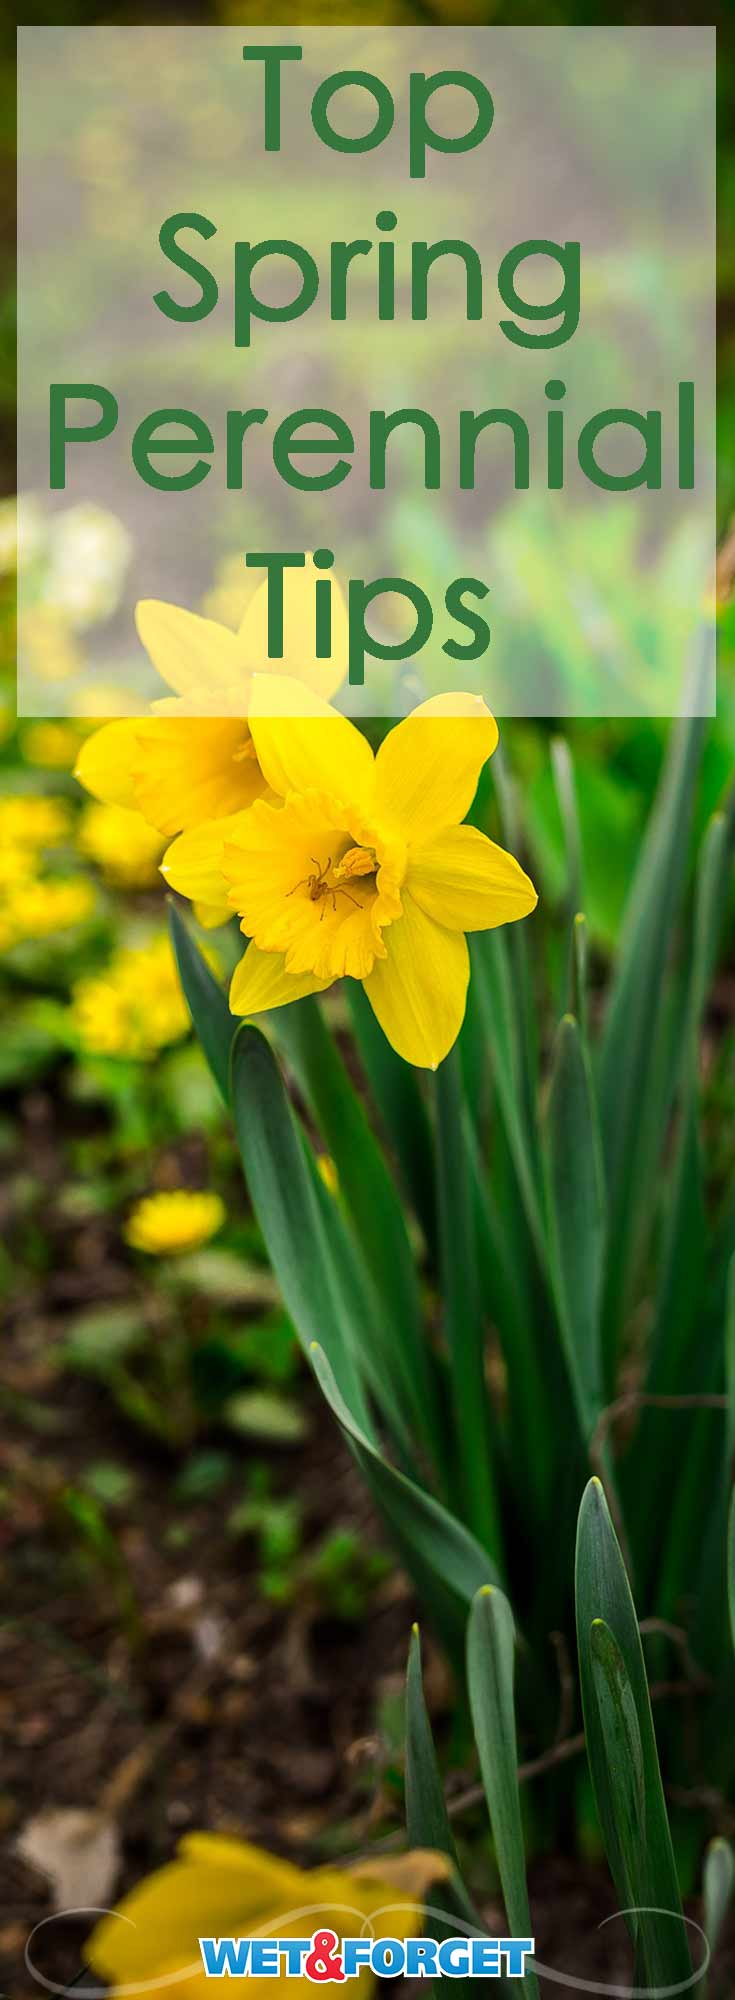 Springtime is just around the corner! Read up on these top tips to make sure your perennials grow bountiful blooms.